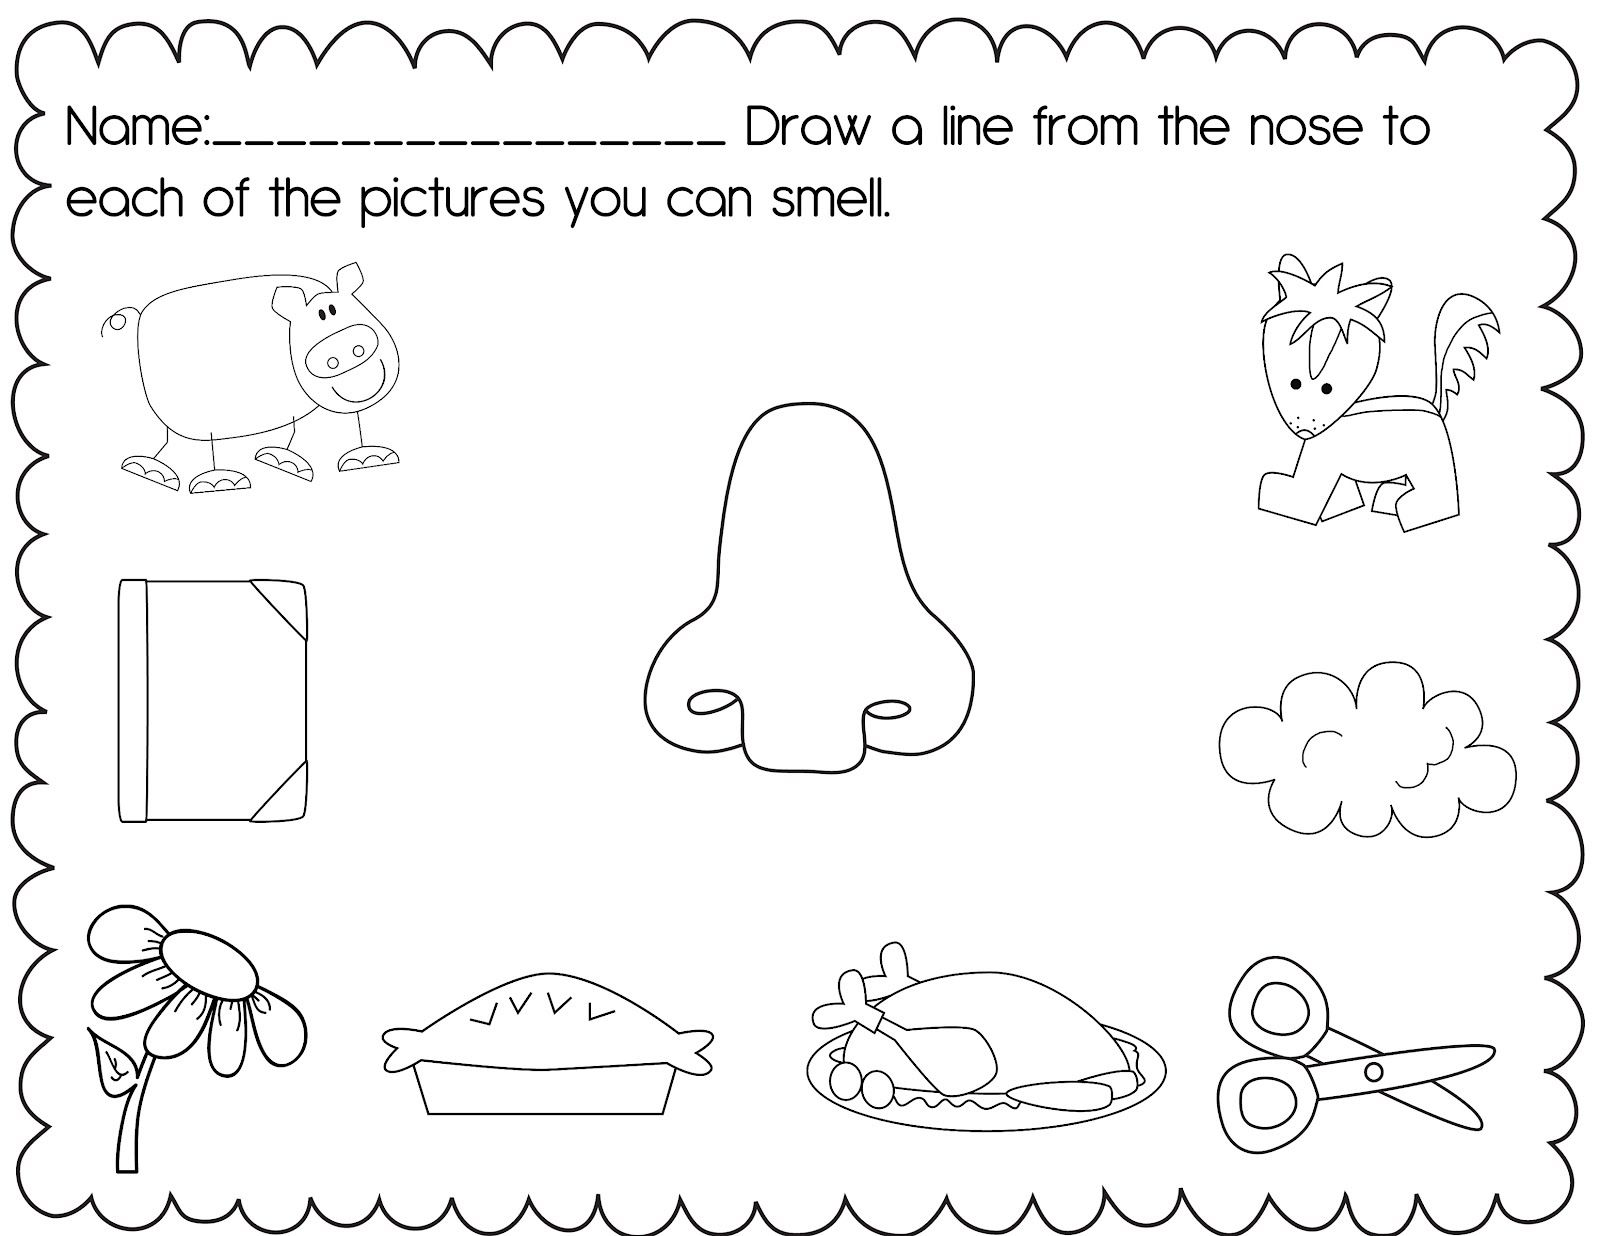 5 Senses Kindergarten Worksheets Davezan – 5 Senses Kindergarten Worksheets